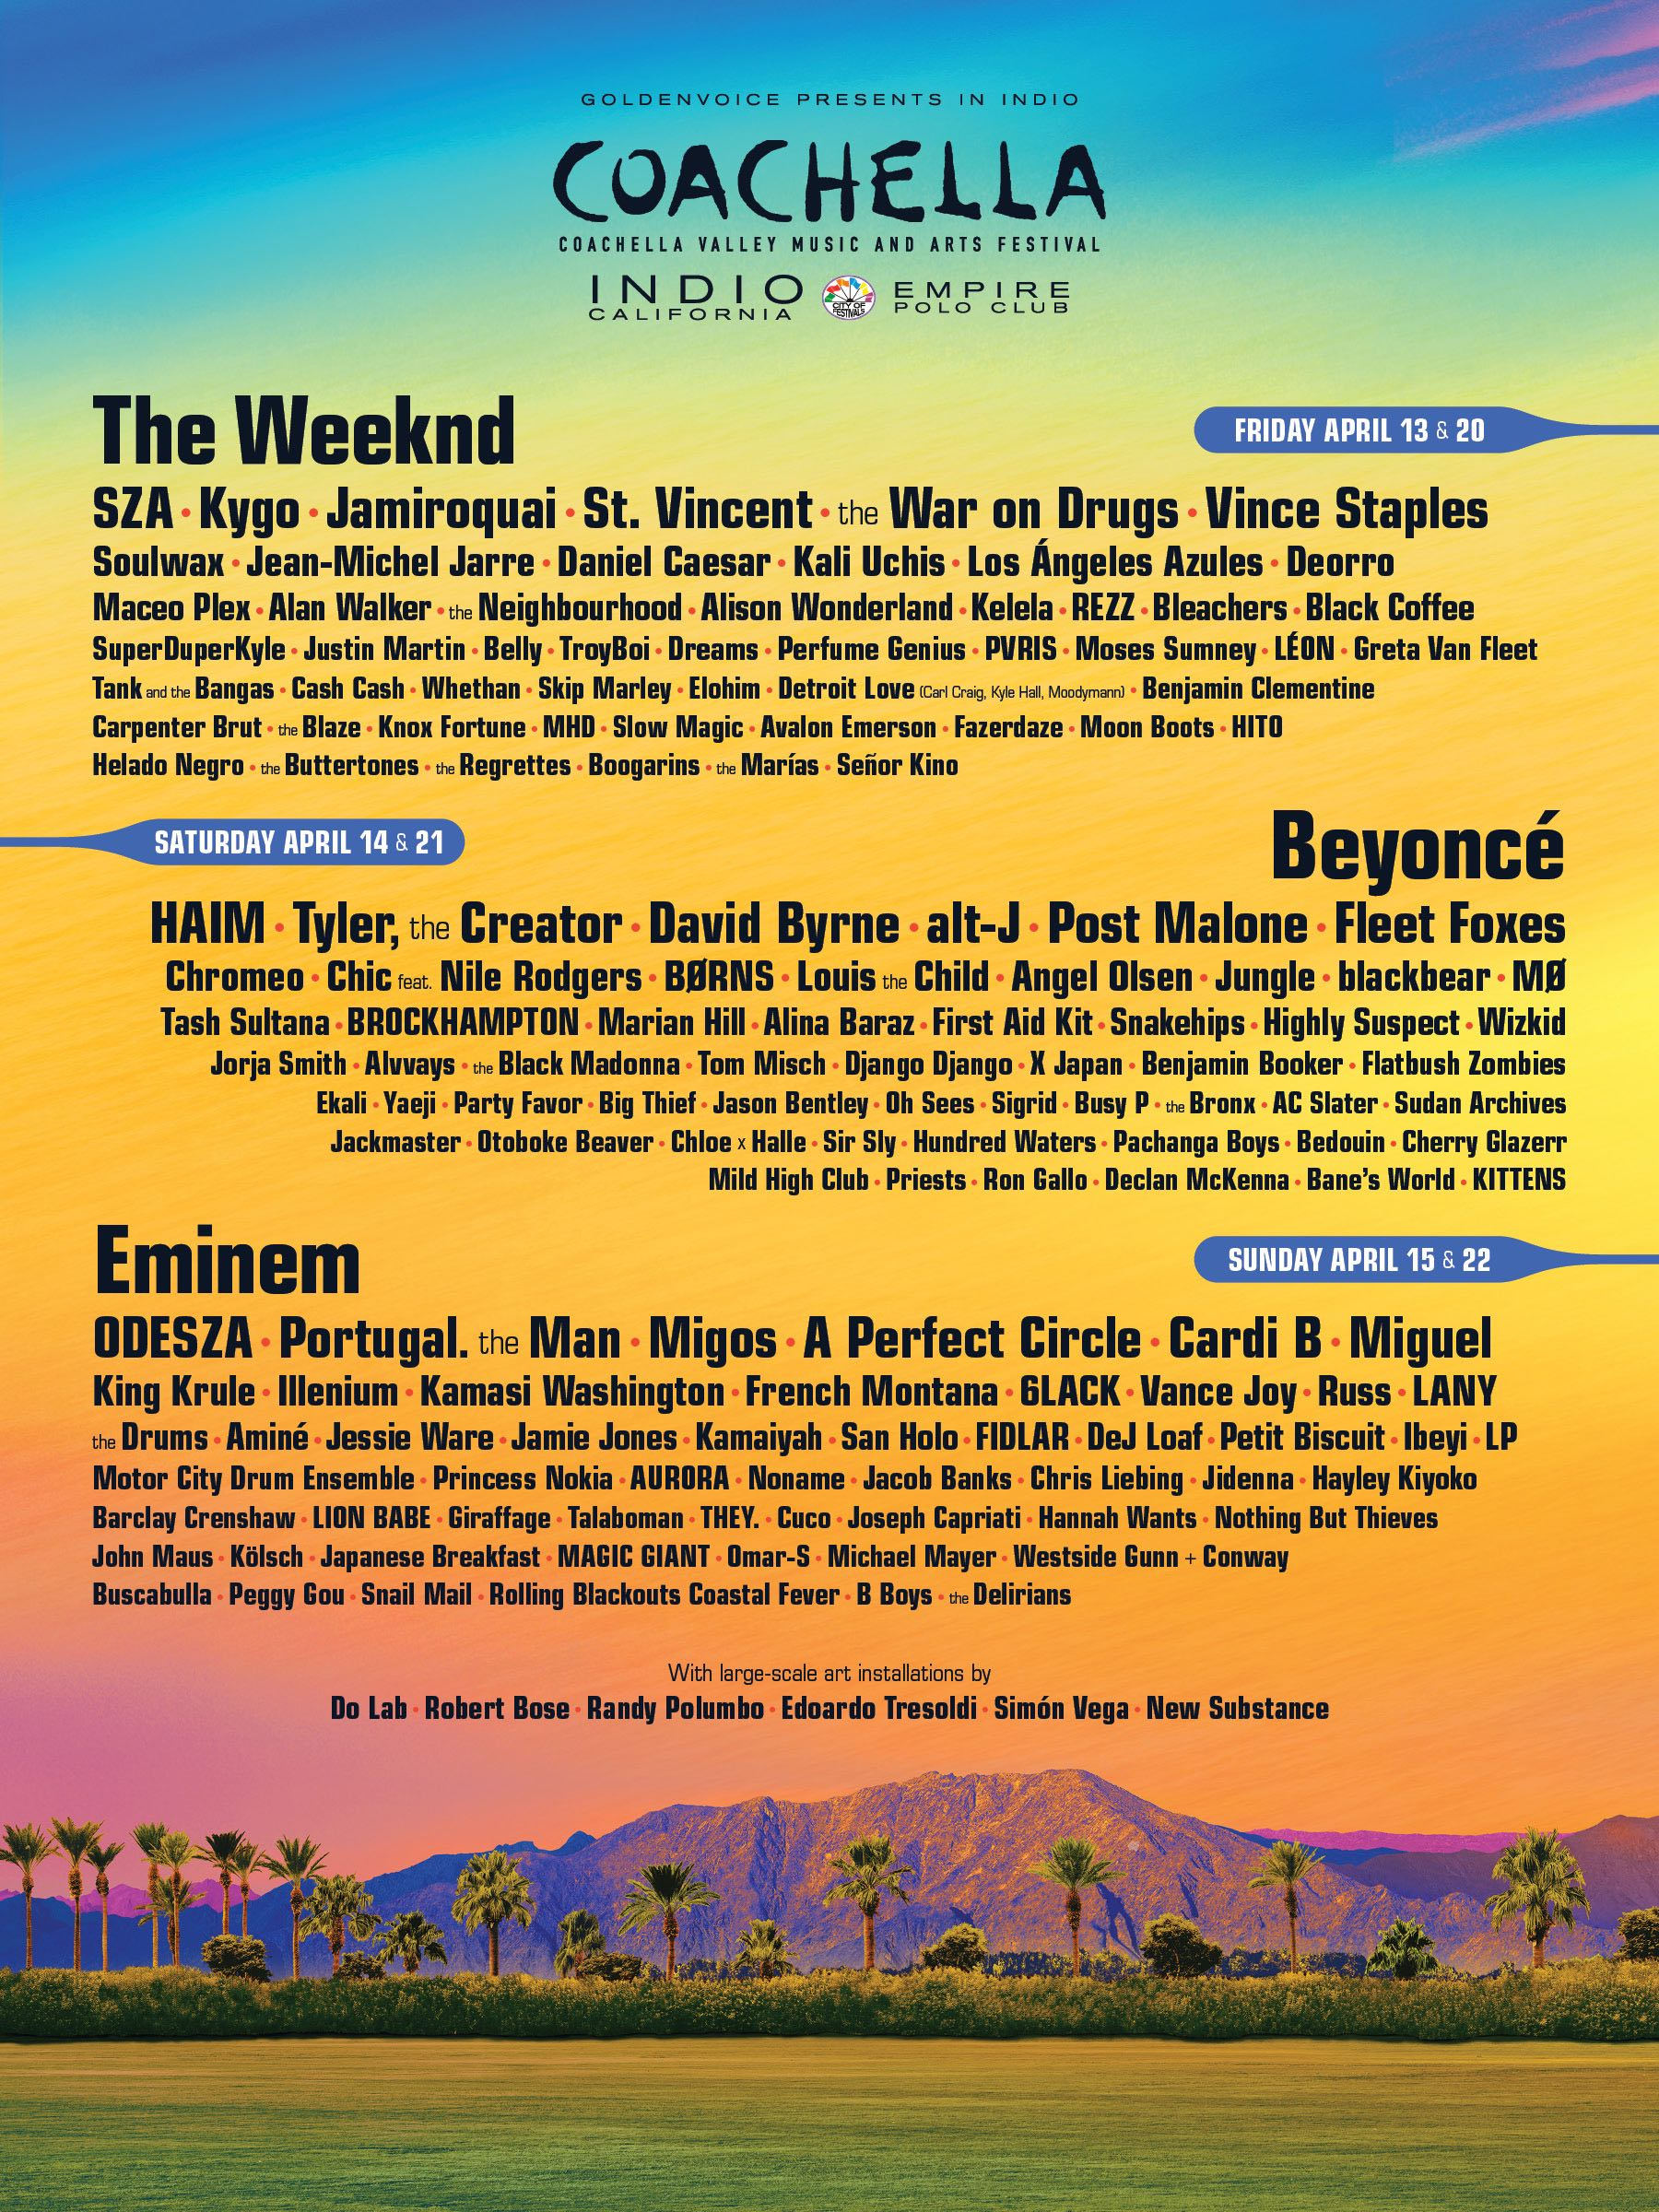 coachella 2018 flyer